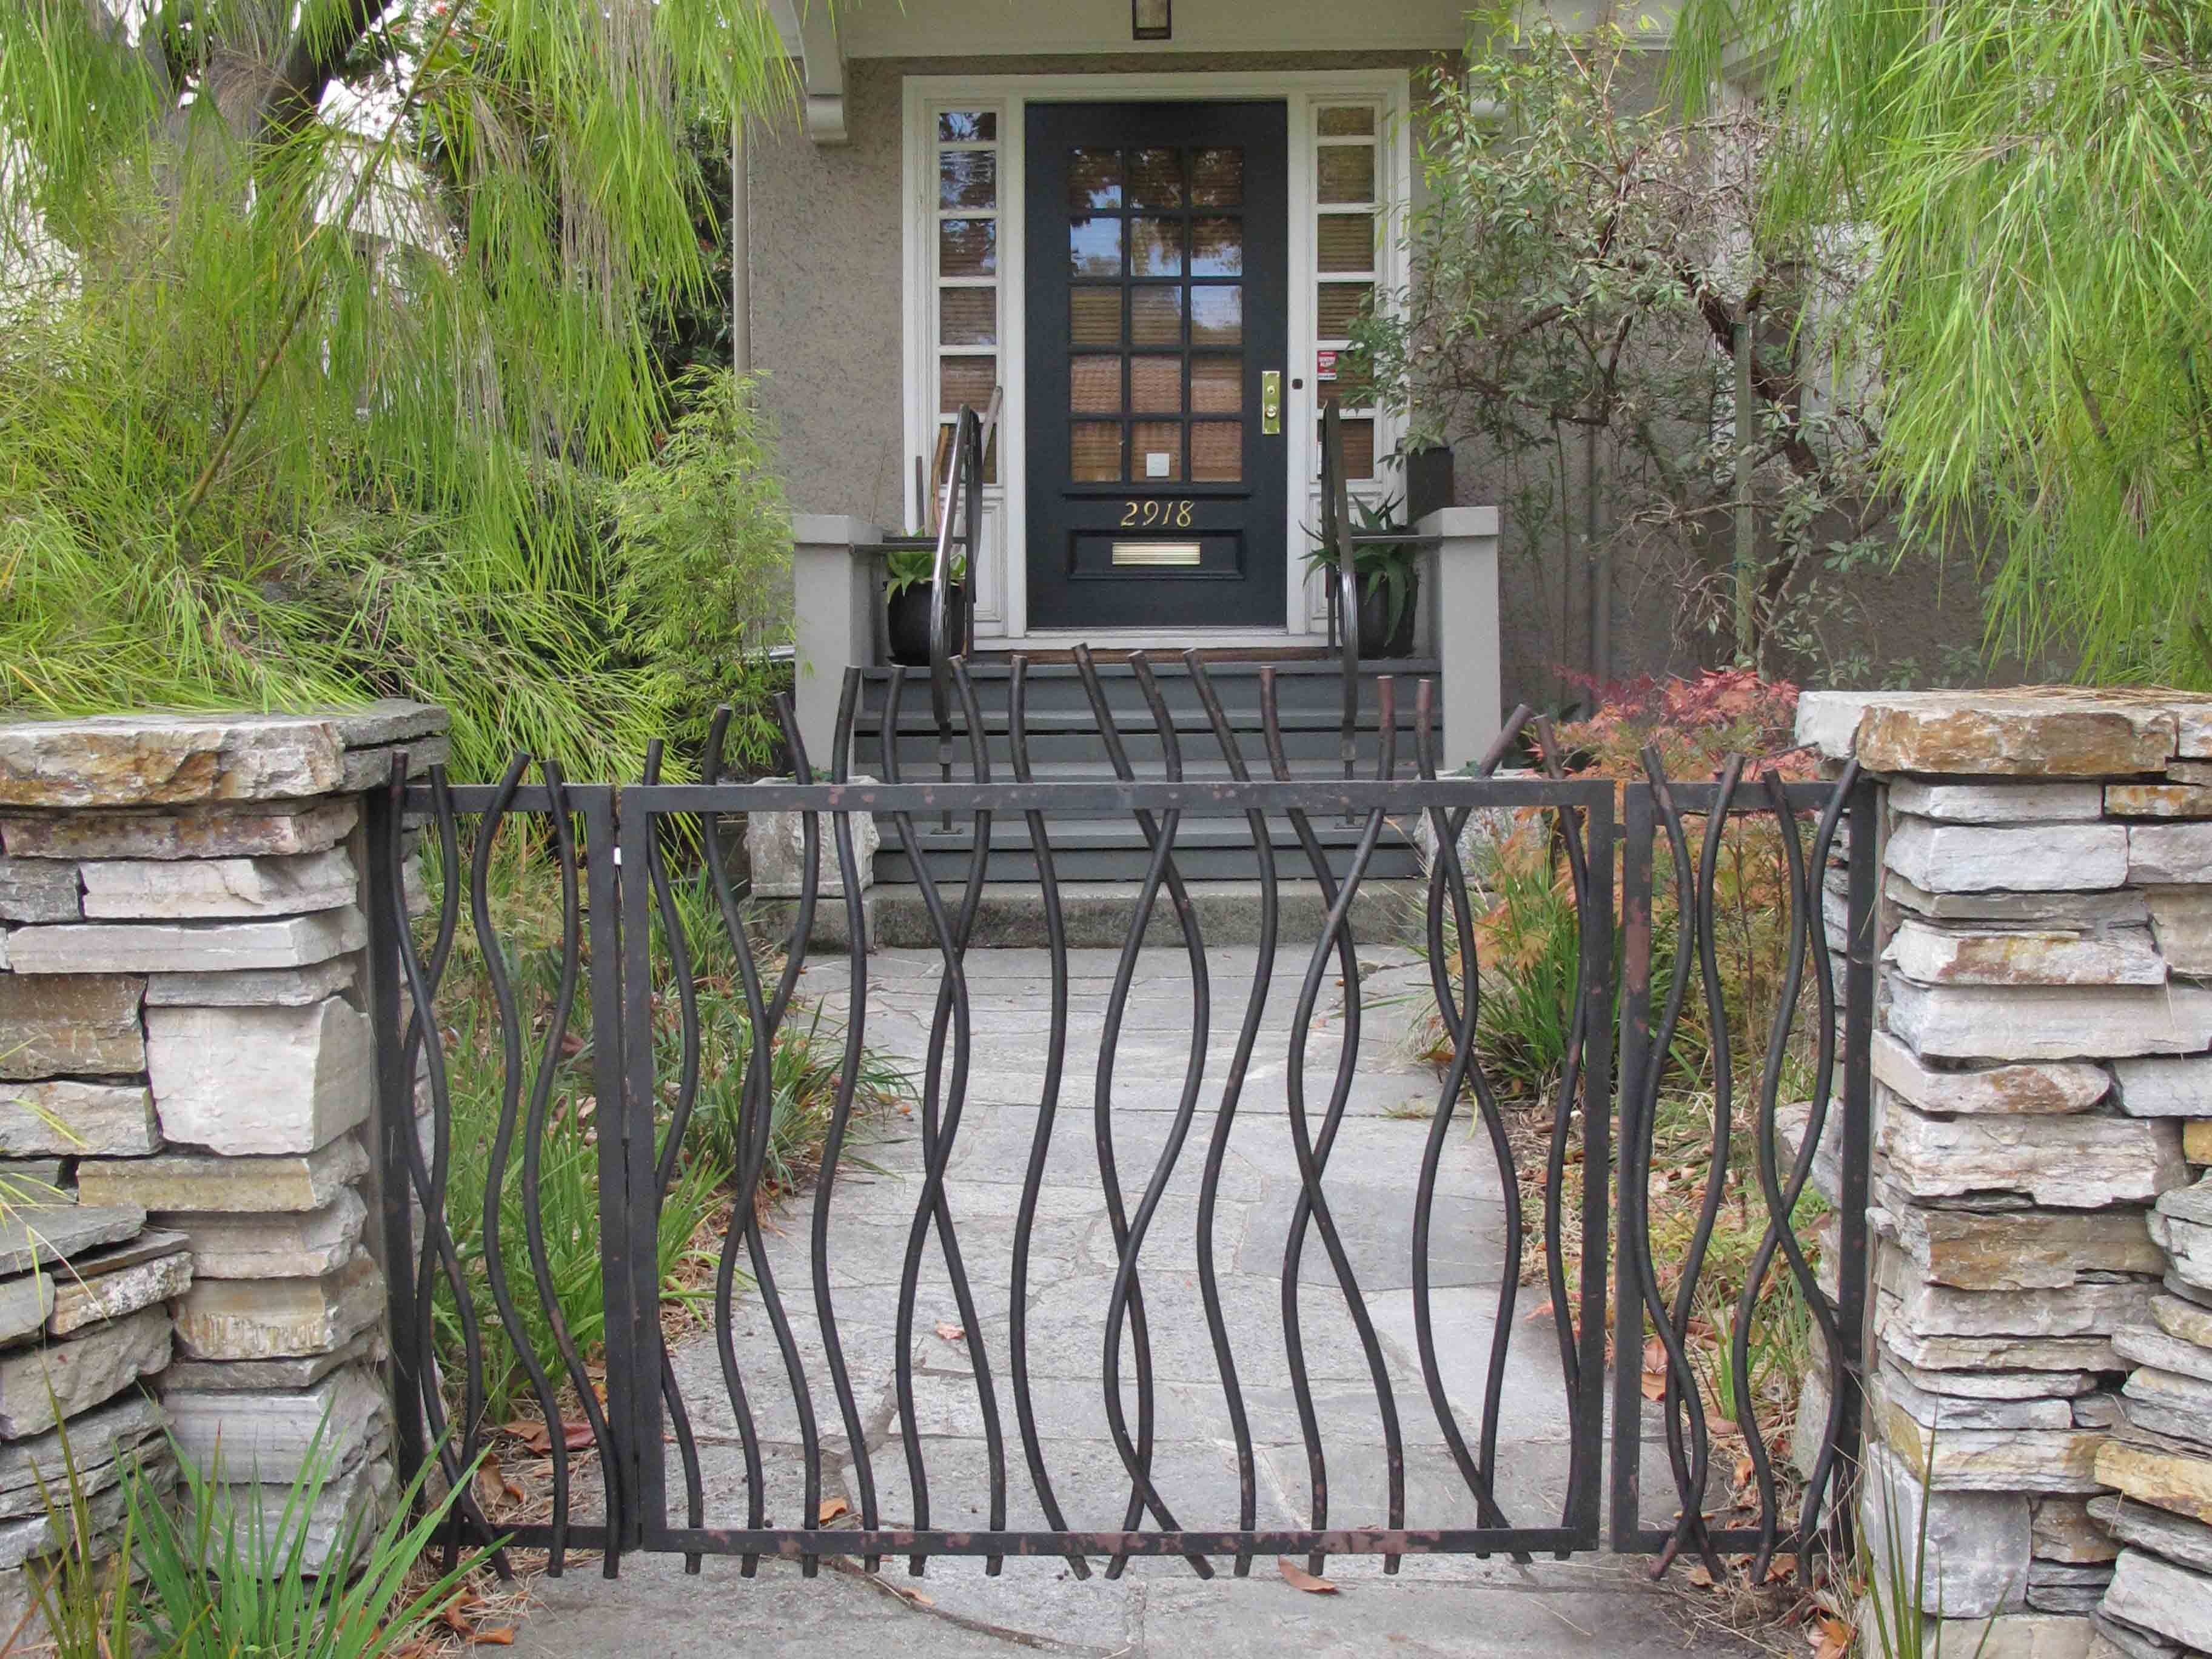 usually metal gates seem so clunky and heavy but this one lends a